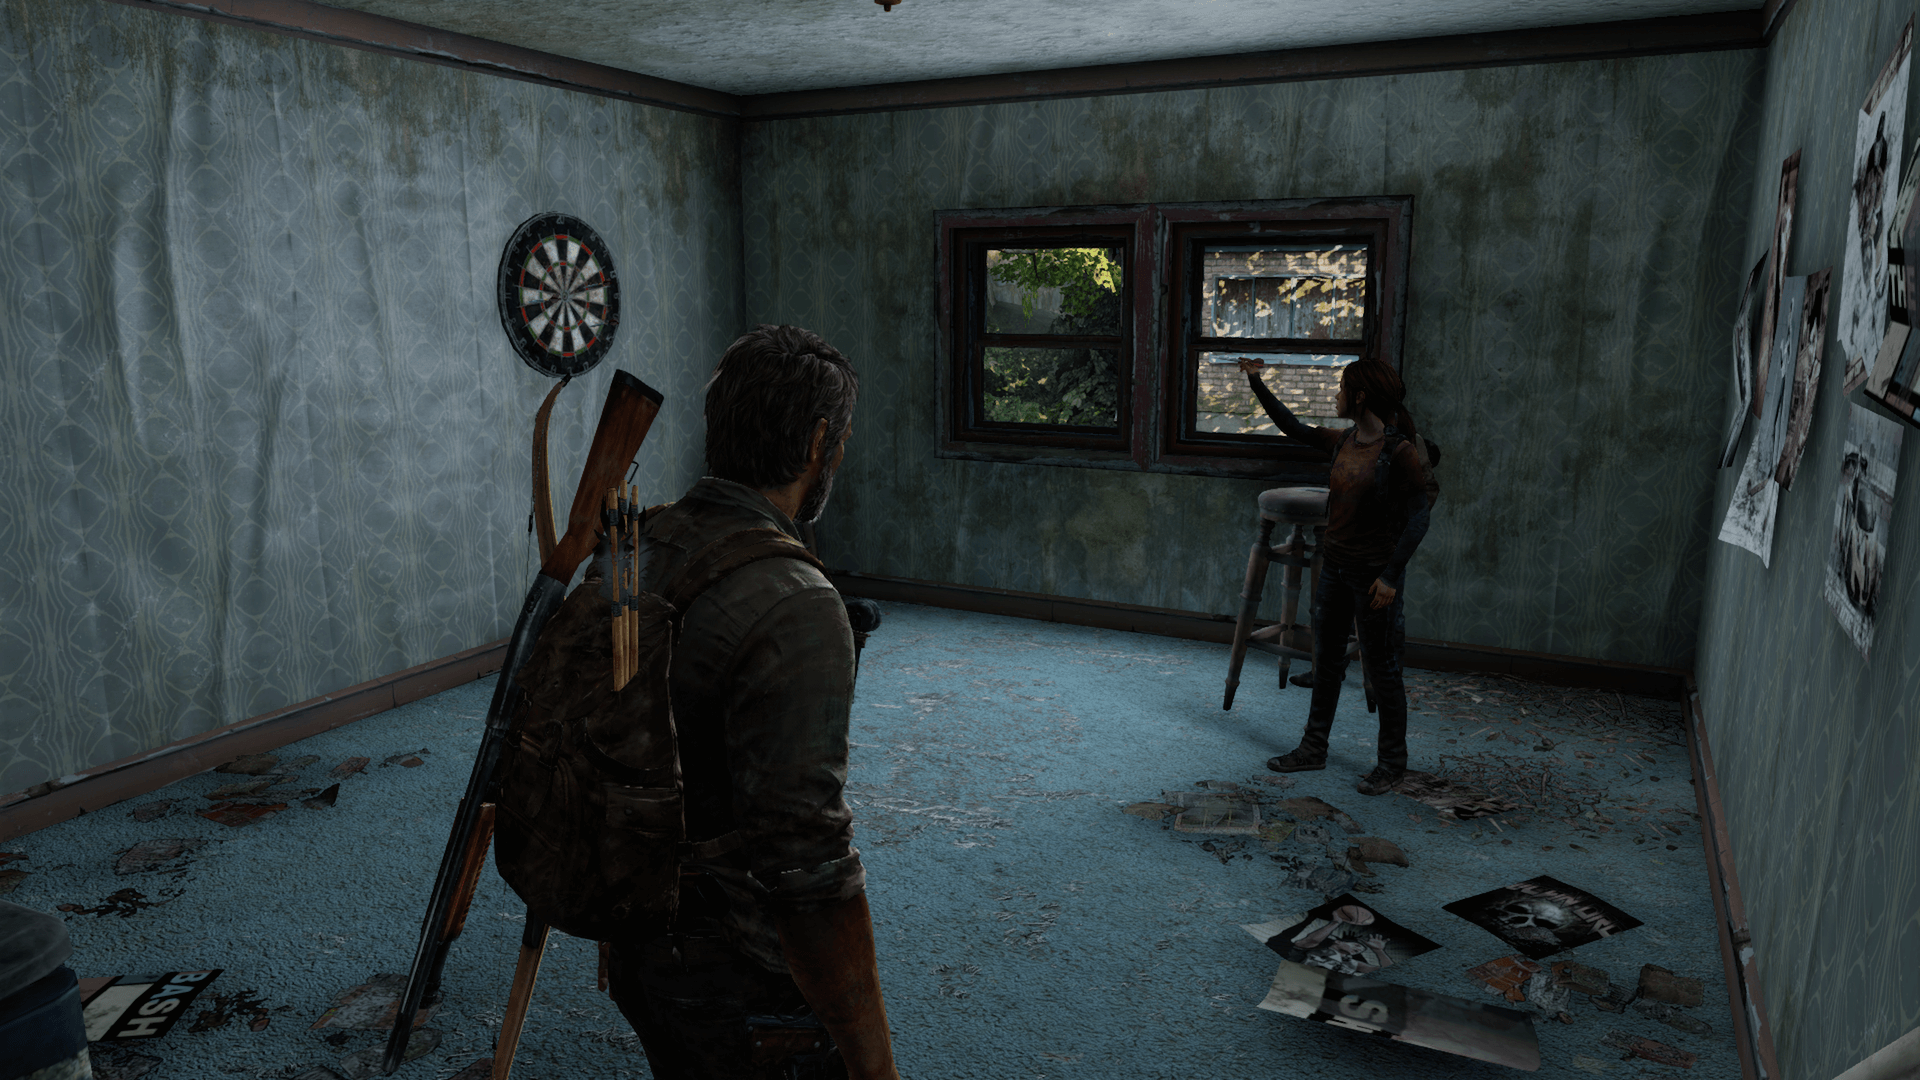 The Last of Us - Ellie practicando puntería